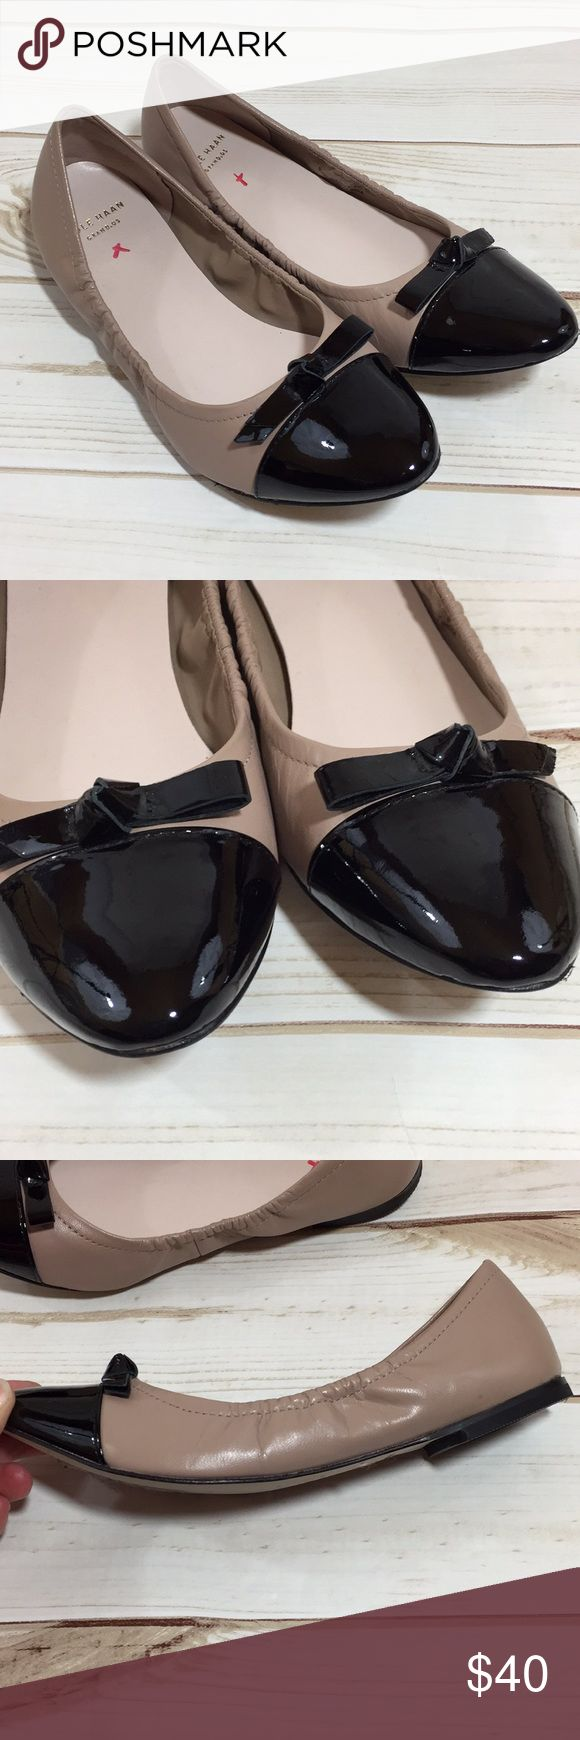 Cole Haan Grand.Os cap toe ballet flats Cole Haan Grand.Os cap toe ballet flats. Size 6 1/2. The colors are taupe and black. Cole Haan Shoes Flats & Loafers